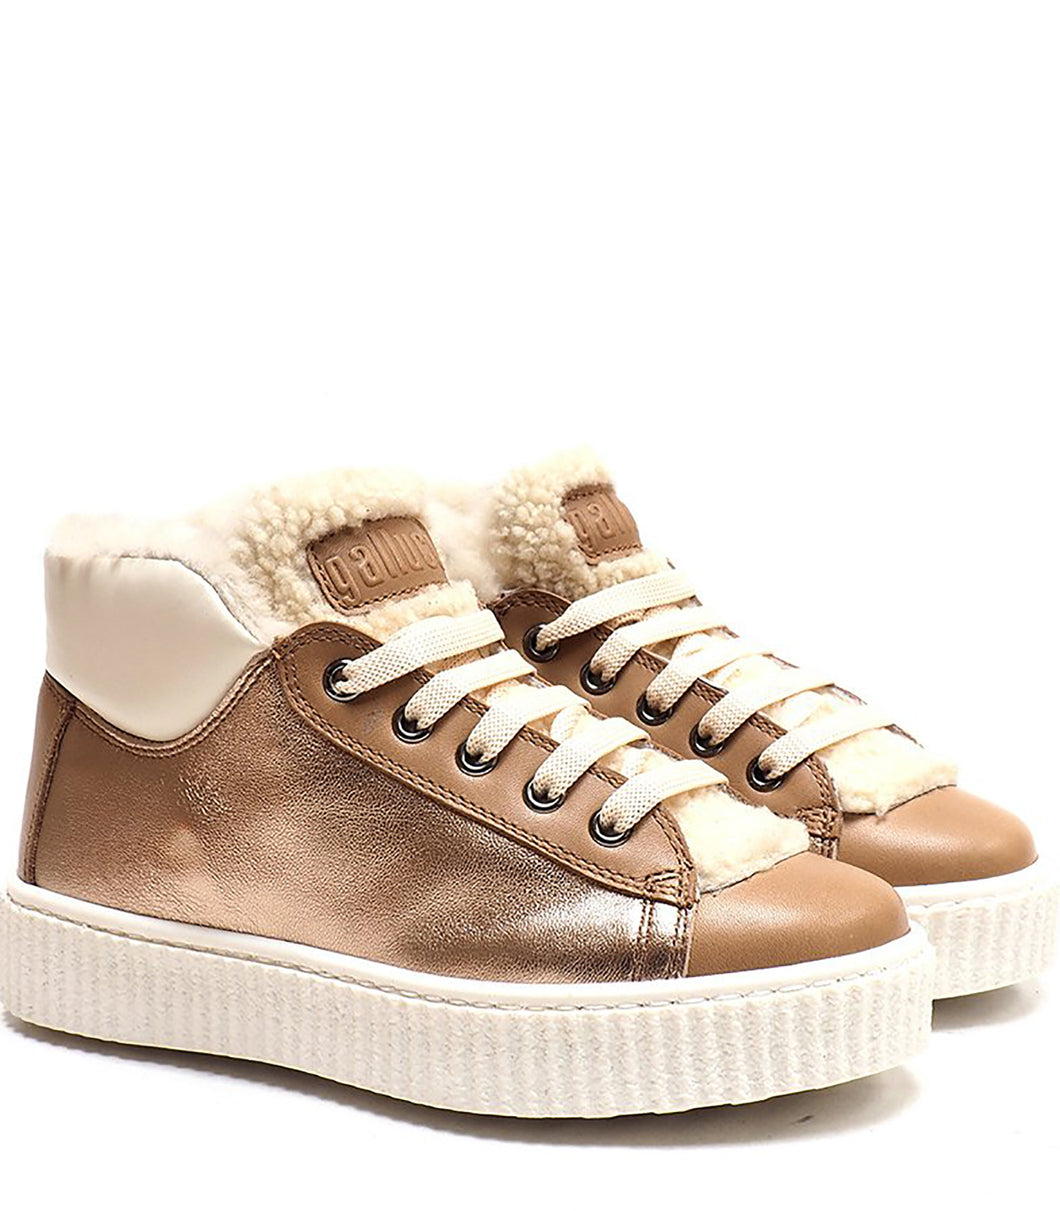 High-Top Sneakers in Metallic Effect Pink Leather and Beige and White Calf Leather with Fur